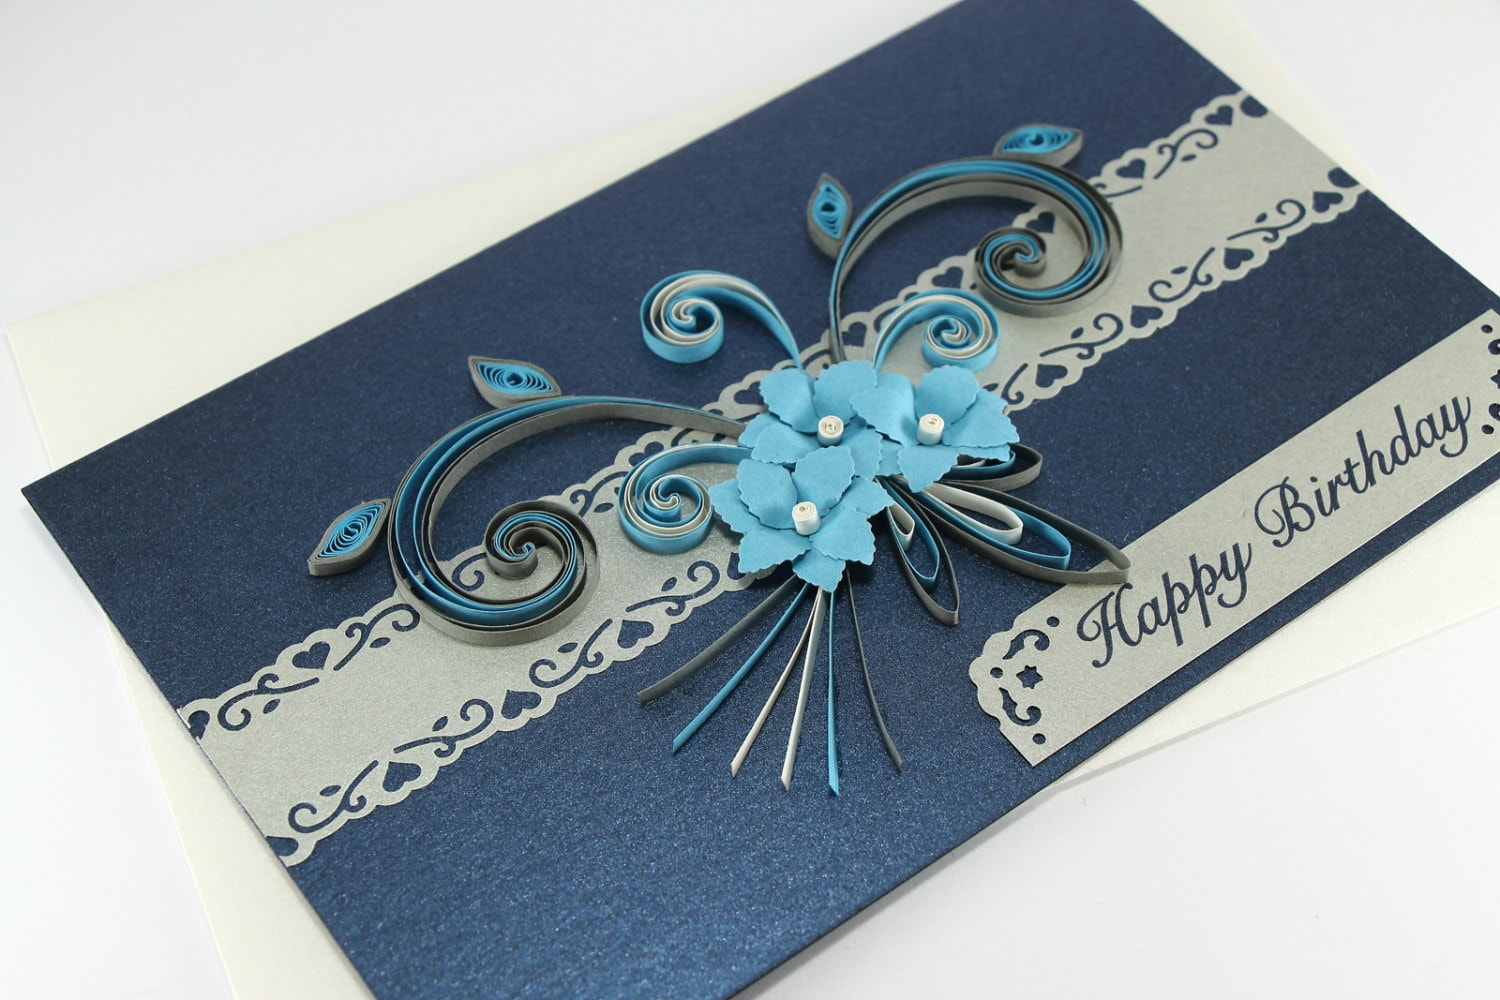 30th birthday card happy birthday card paper quilling card zoom kristyandbryce Choice Image